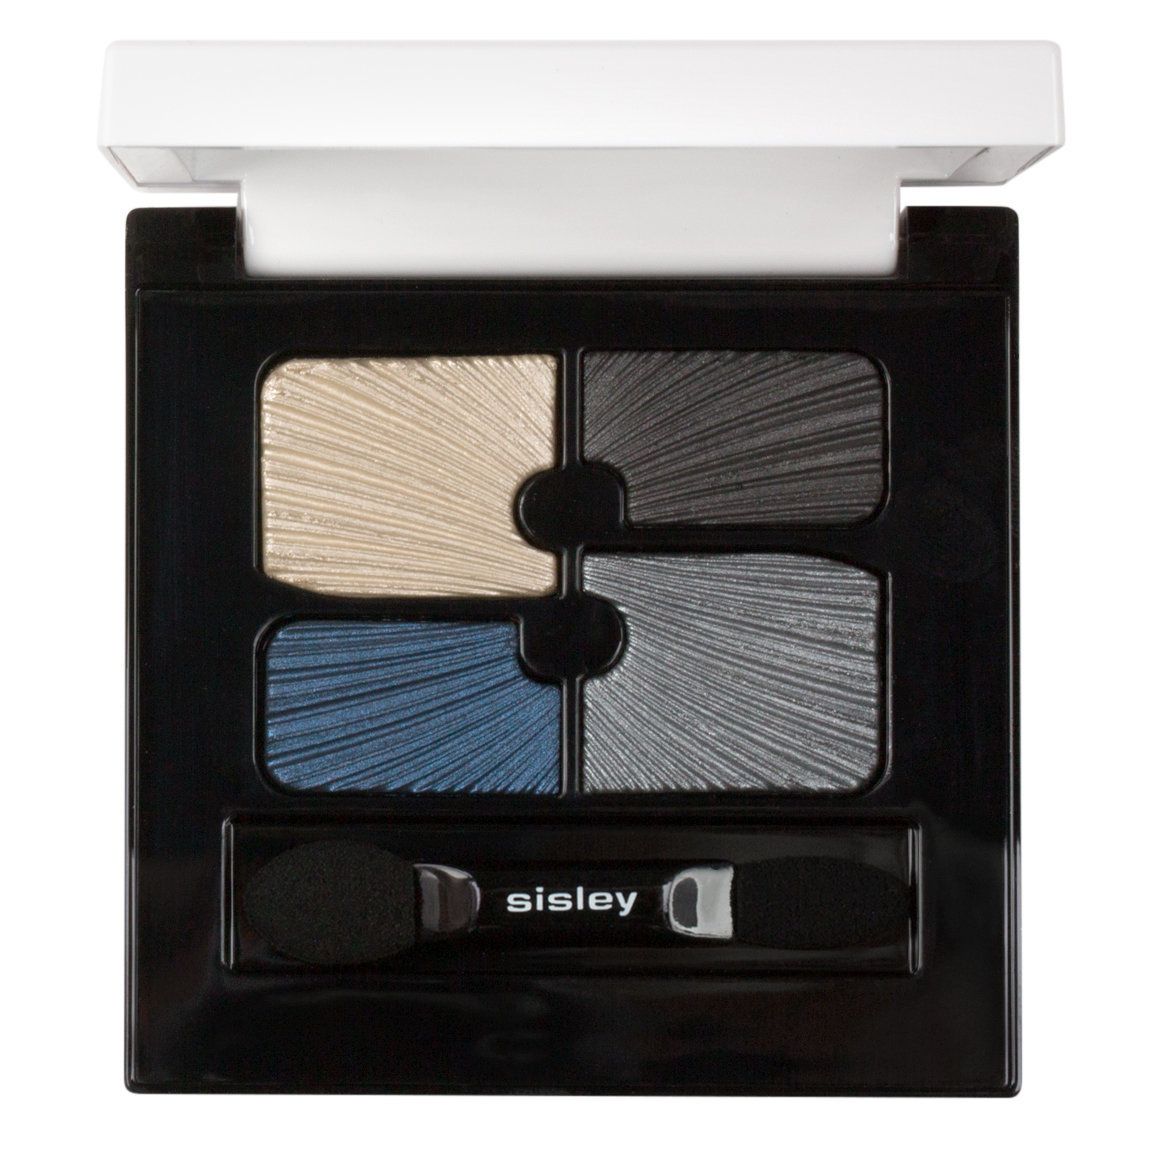 Sisley-Paris Phyto 4 Ombres Eyeshadow Palette Mystery alternative view 1 - product swatch.